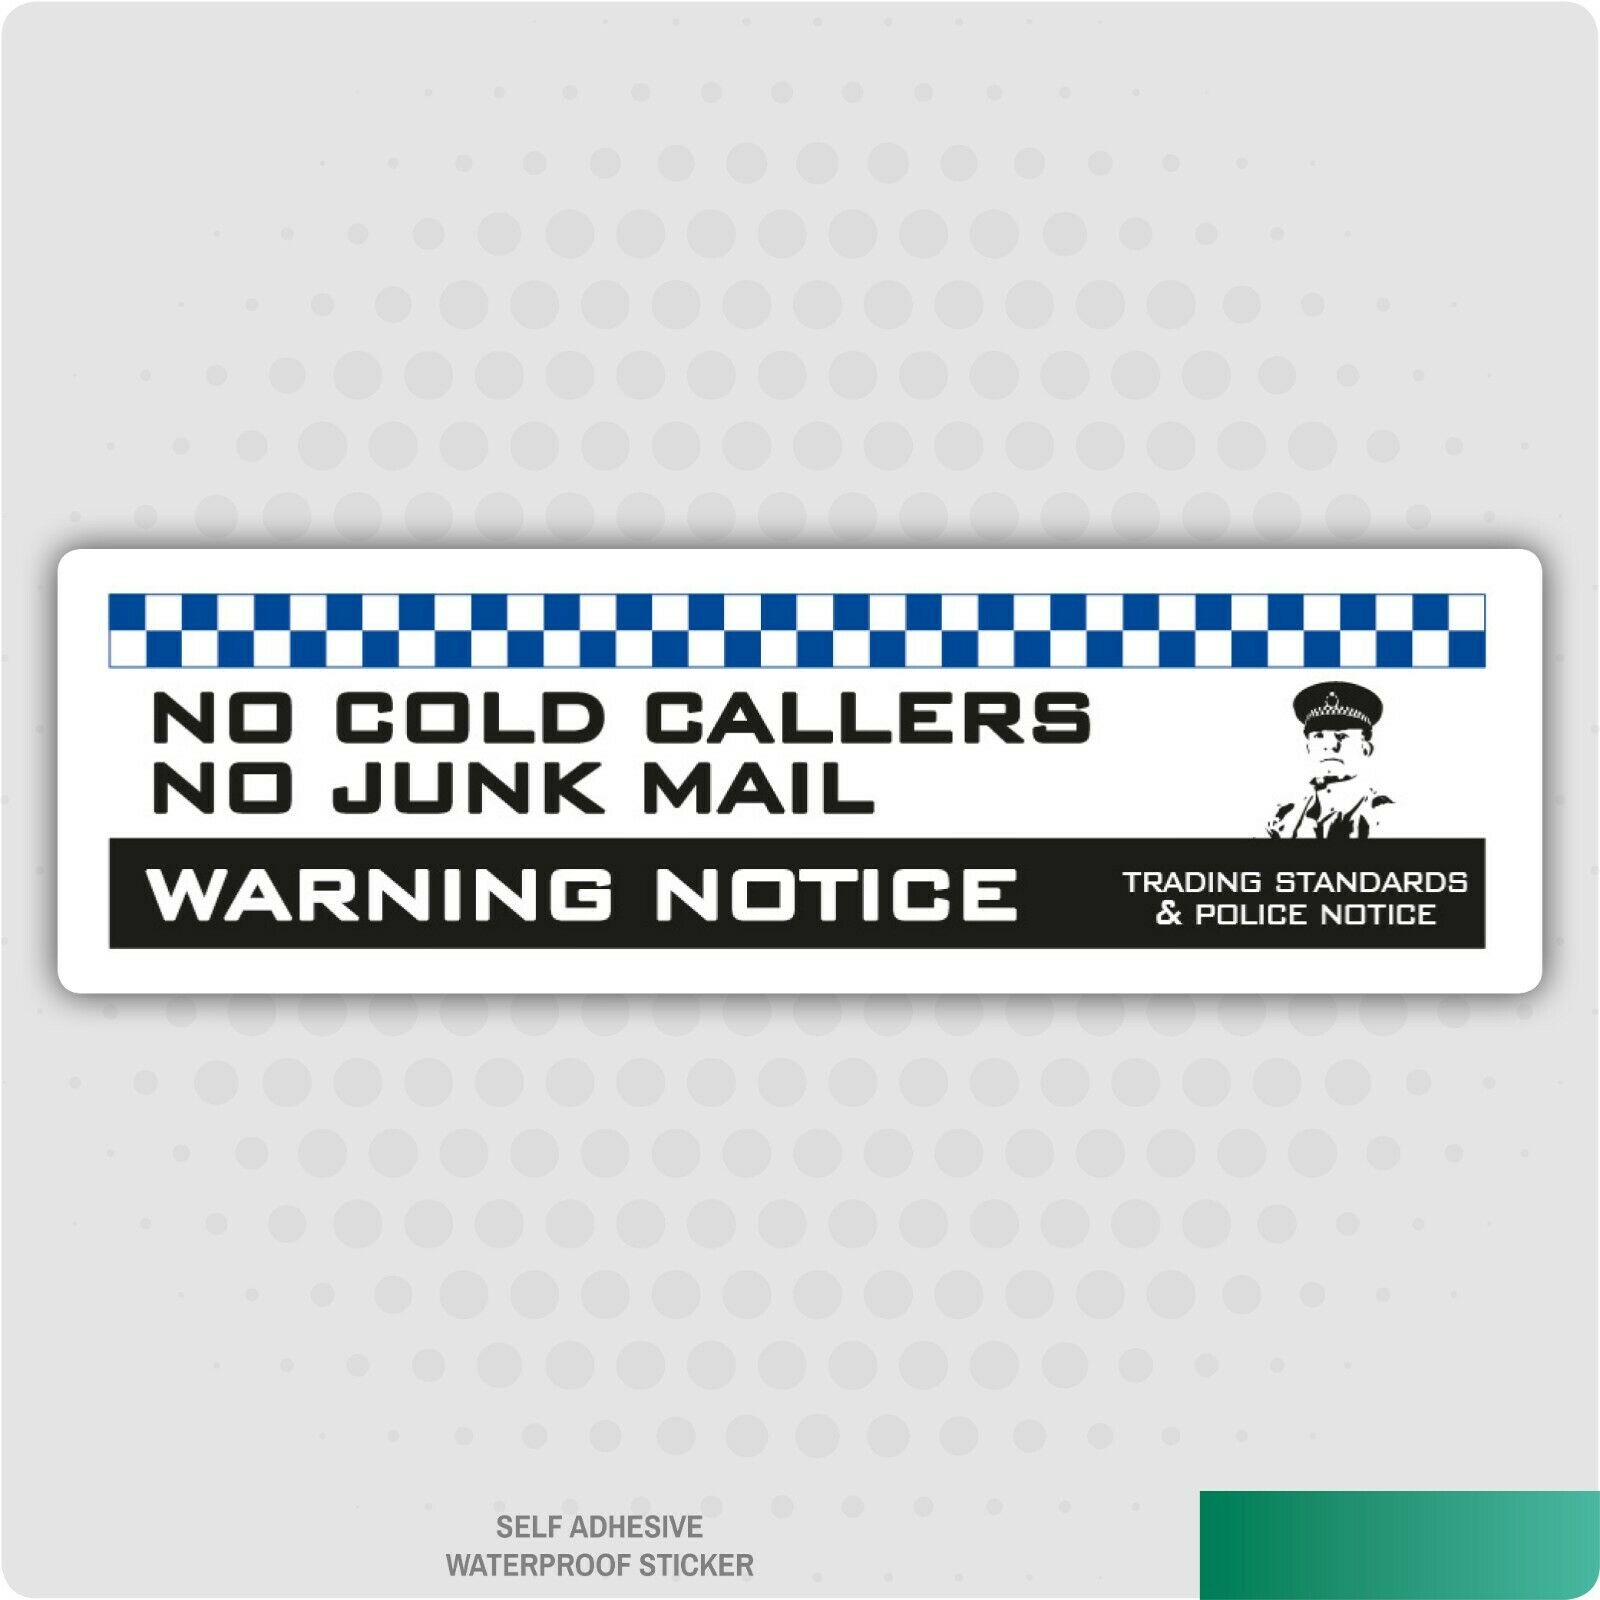 100 x 80 mm 2 x No Cold Callers Junk Mail or Leaflets Door Warning Sign Sticker